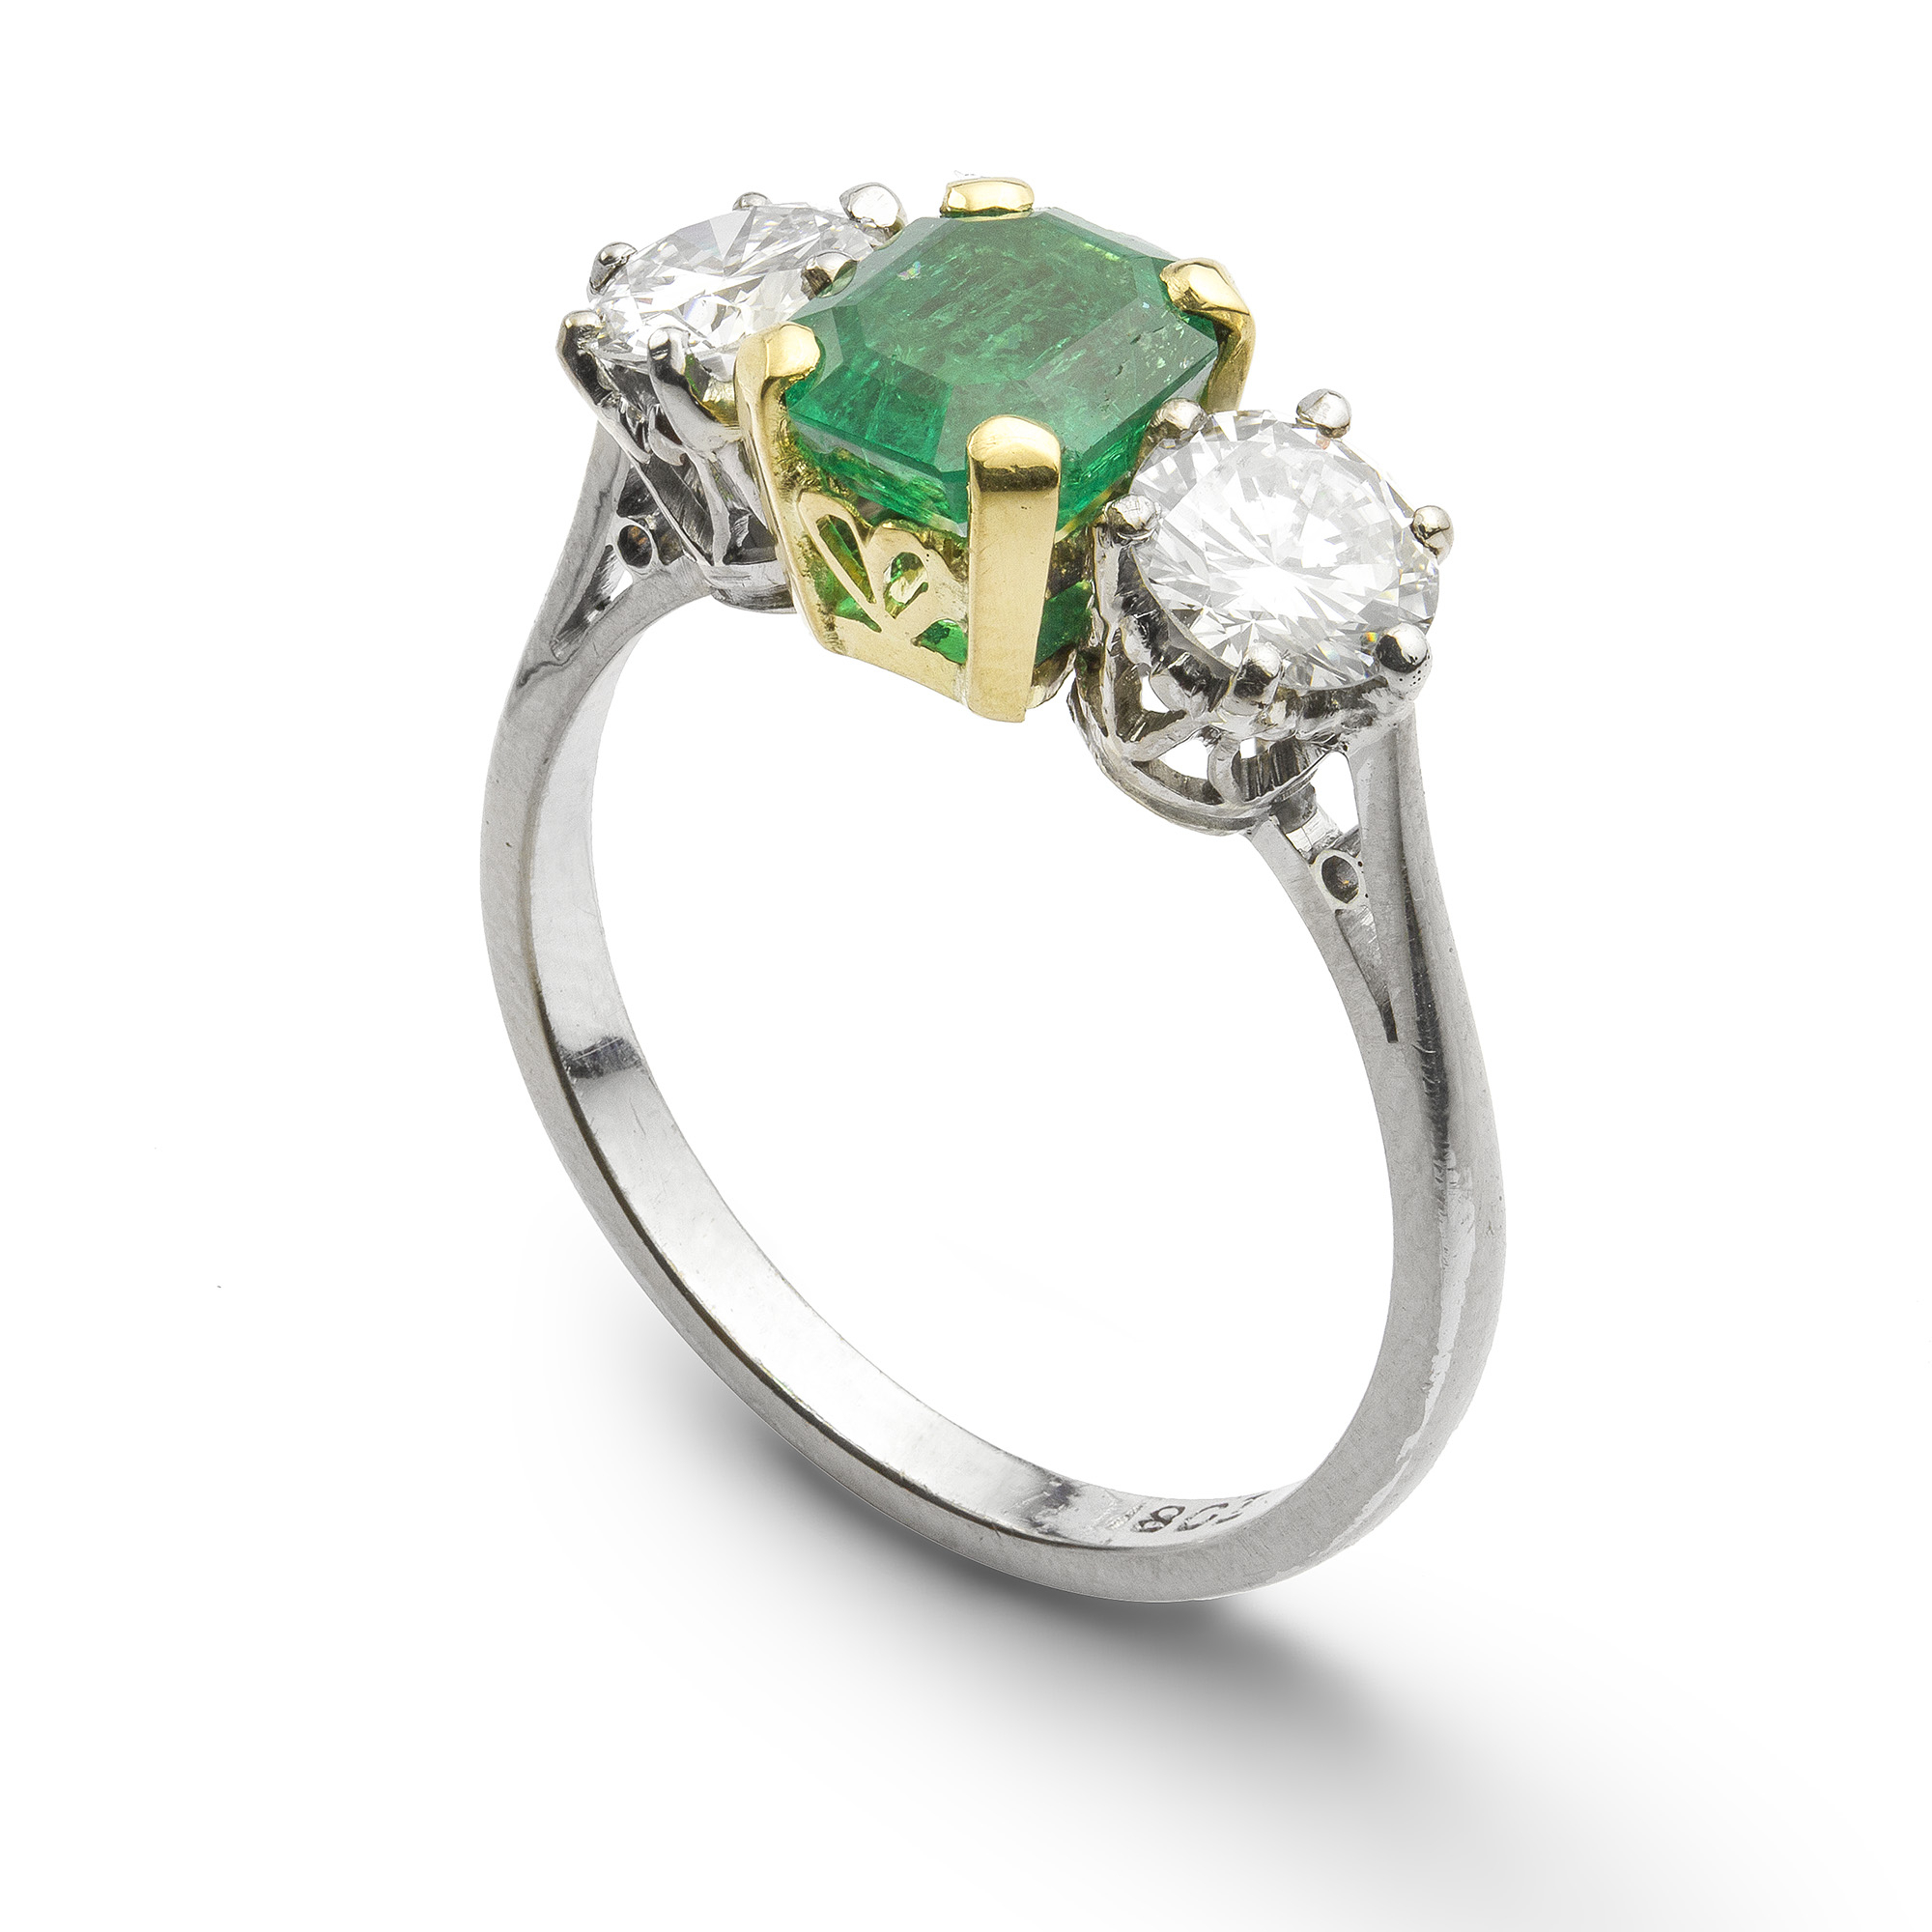 A Three Stone Emerald And Diamond Ring – Bentley & Skinner, The Mayfair Antique And Bespoke Jewellery Shop In The Heart Of London Throughout Emerald And Diamond Three Stone Rings (View 7 of 25)